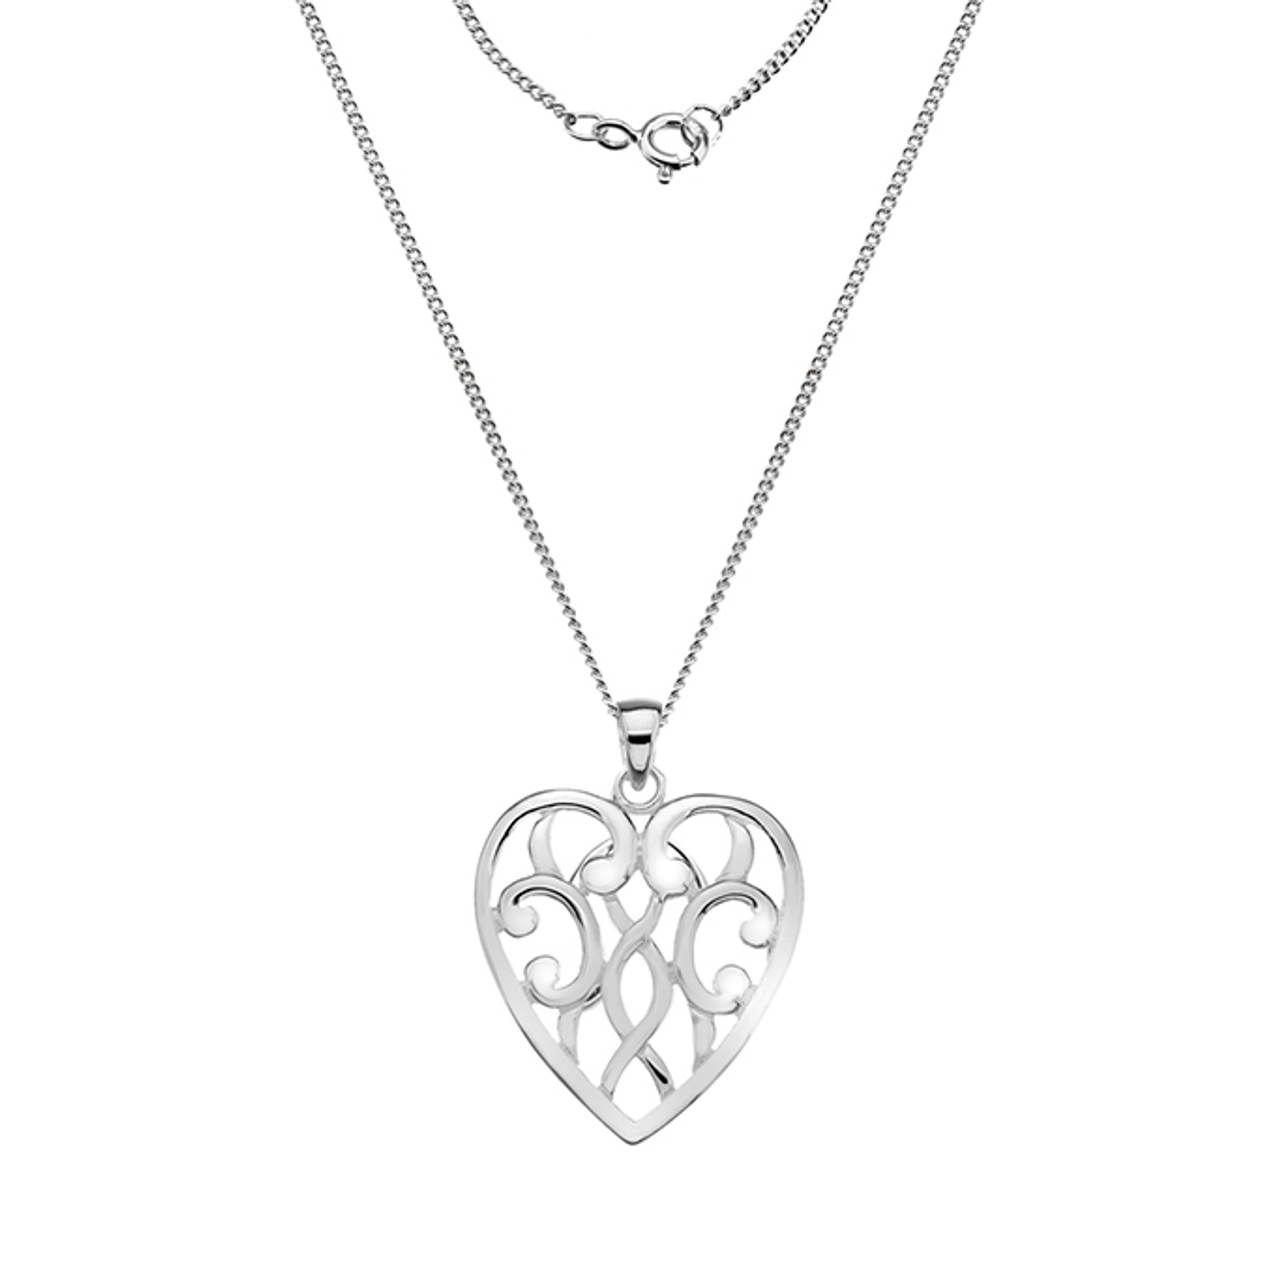 Silver Heart shaped filigree Pendant on Chain.